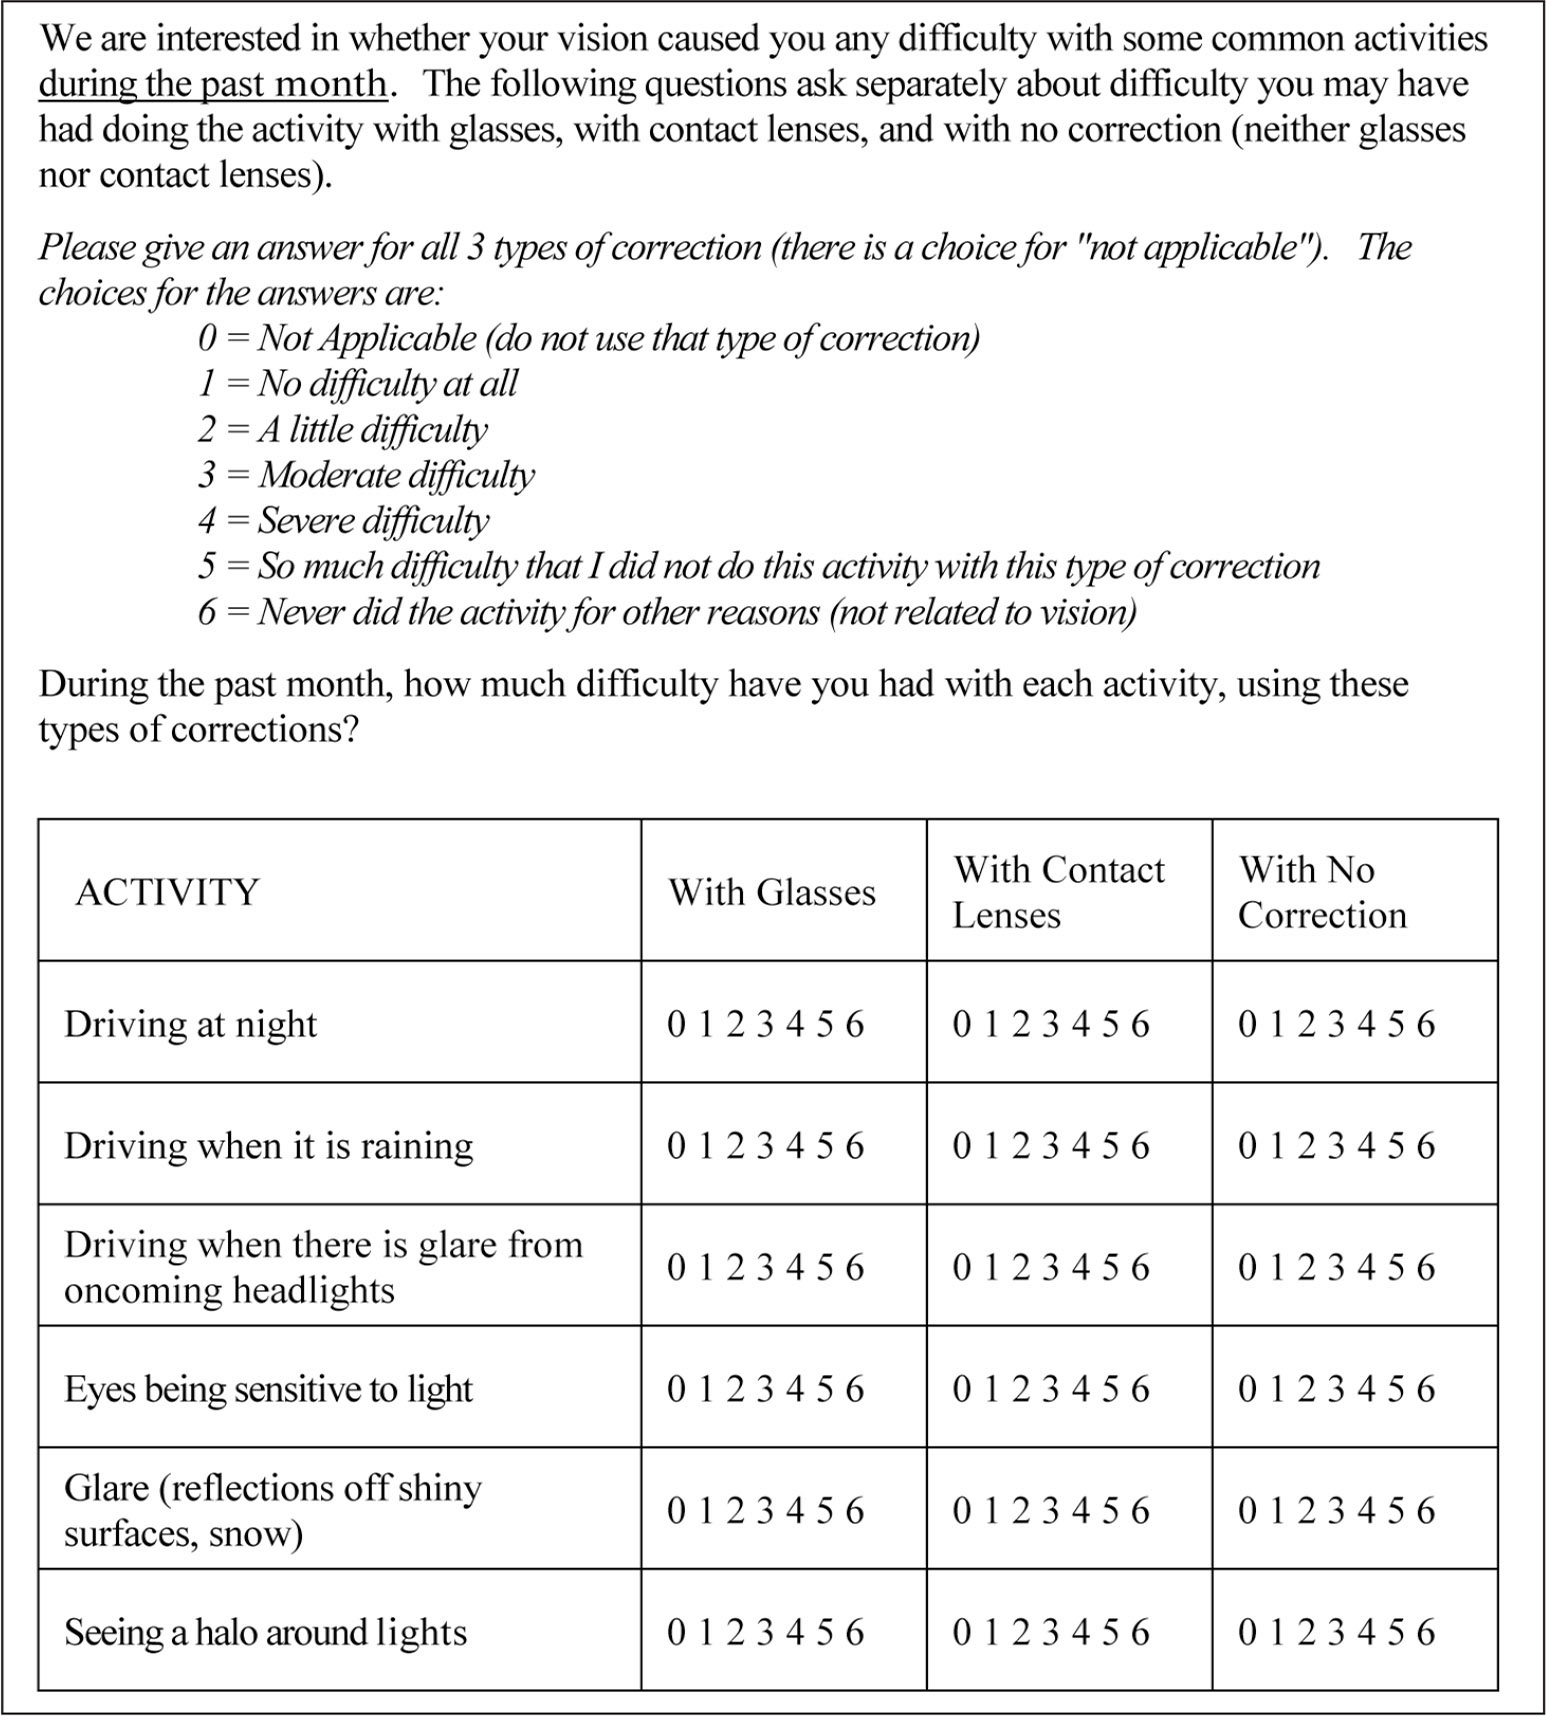 Refractive Status Vision Profile (RSVP) Questionnaire: Driving and Glare Subscales.